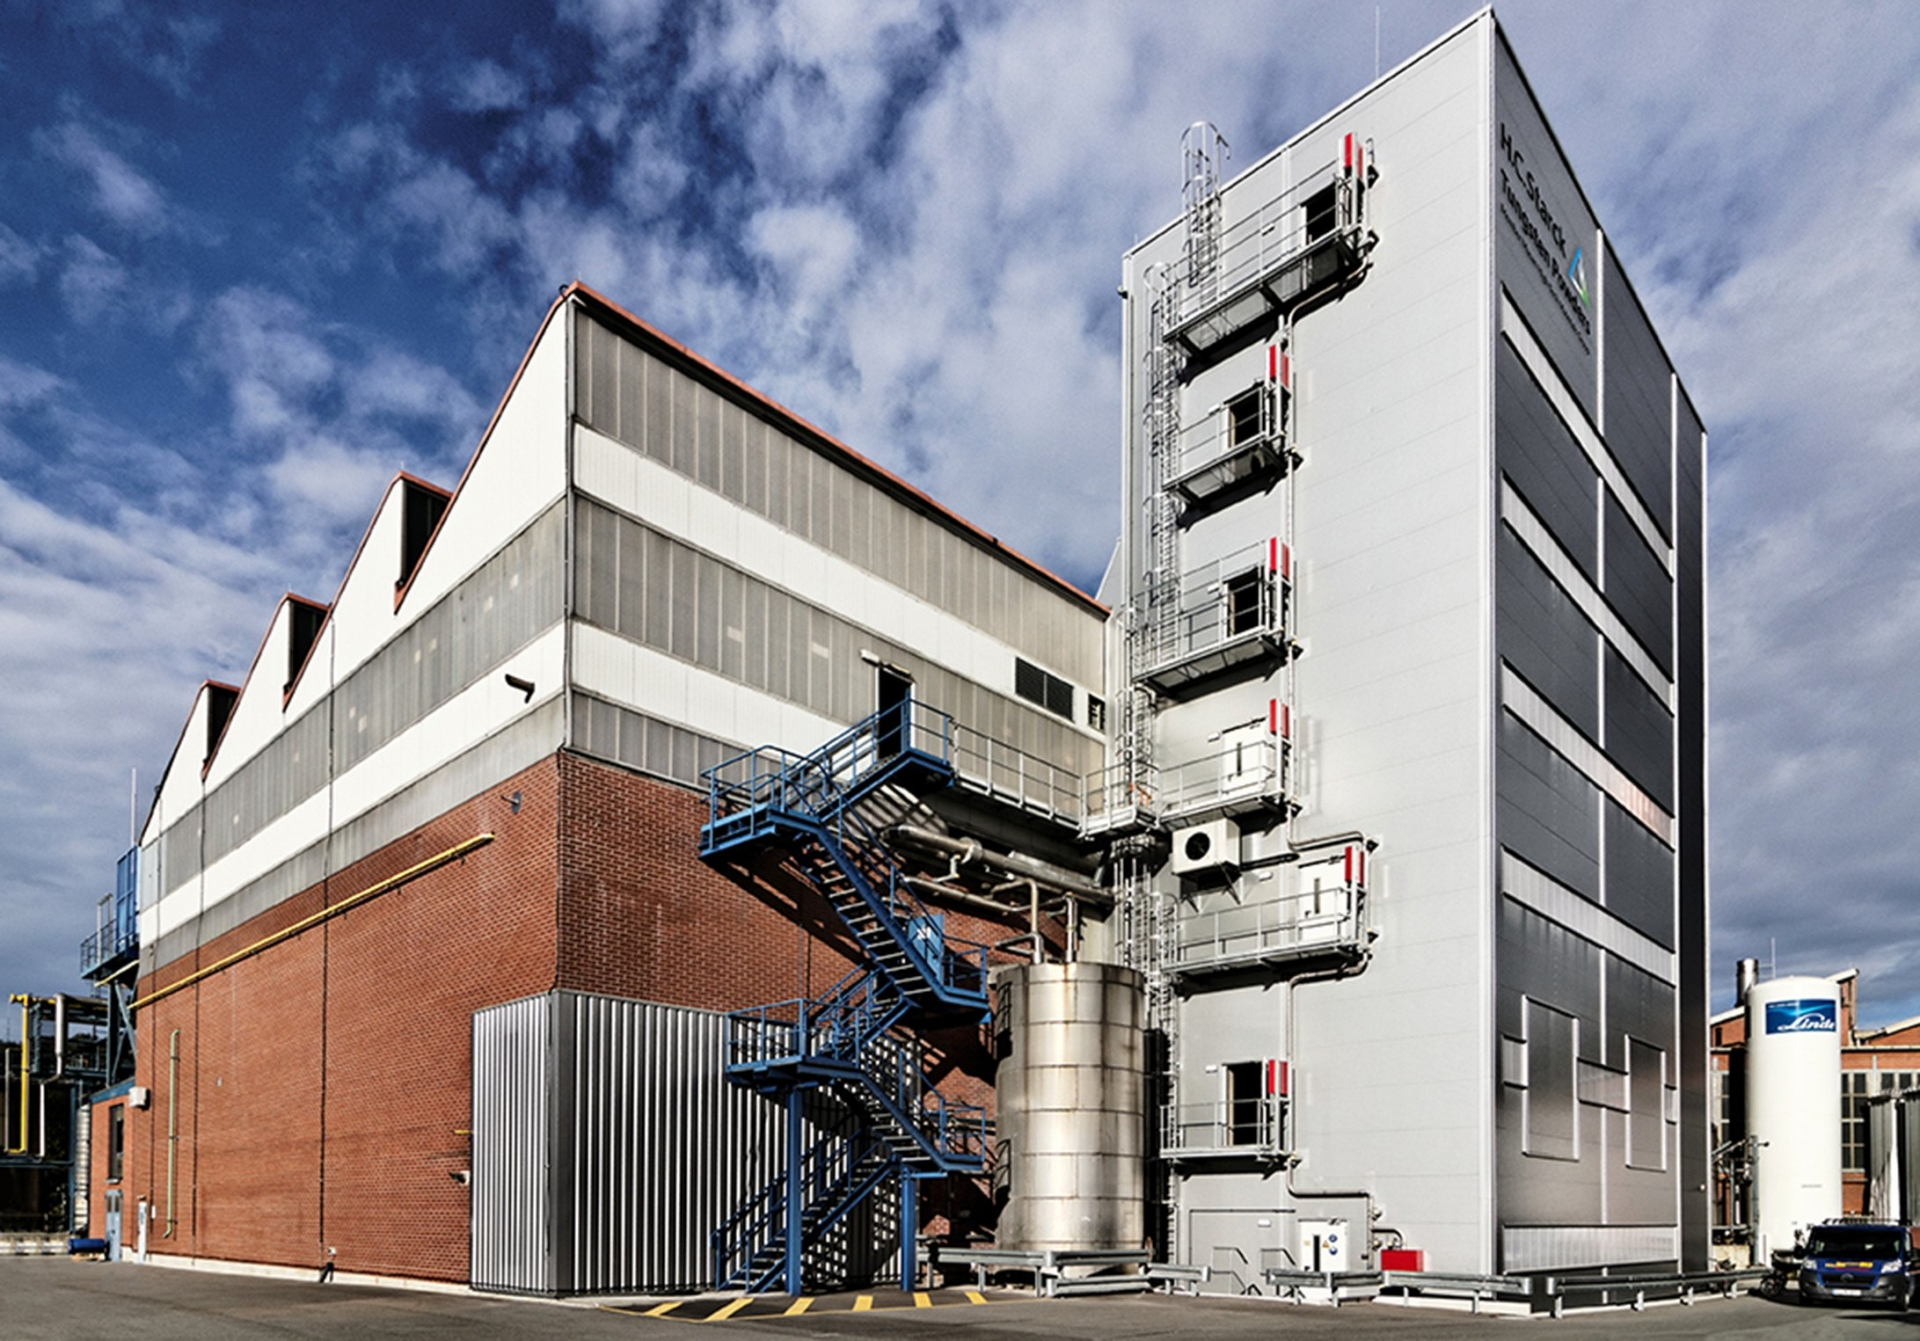 Masan High-Tech Materials and H.C. Starck marks first year of M&A journey